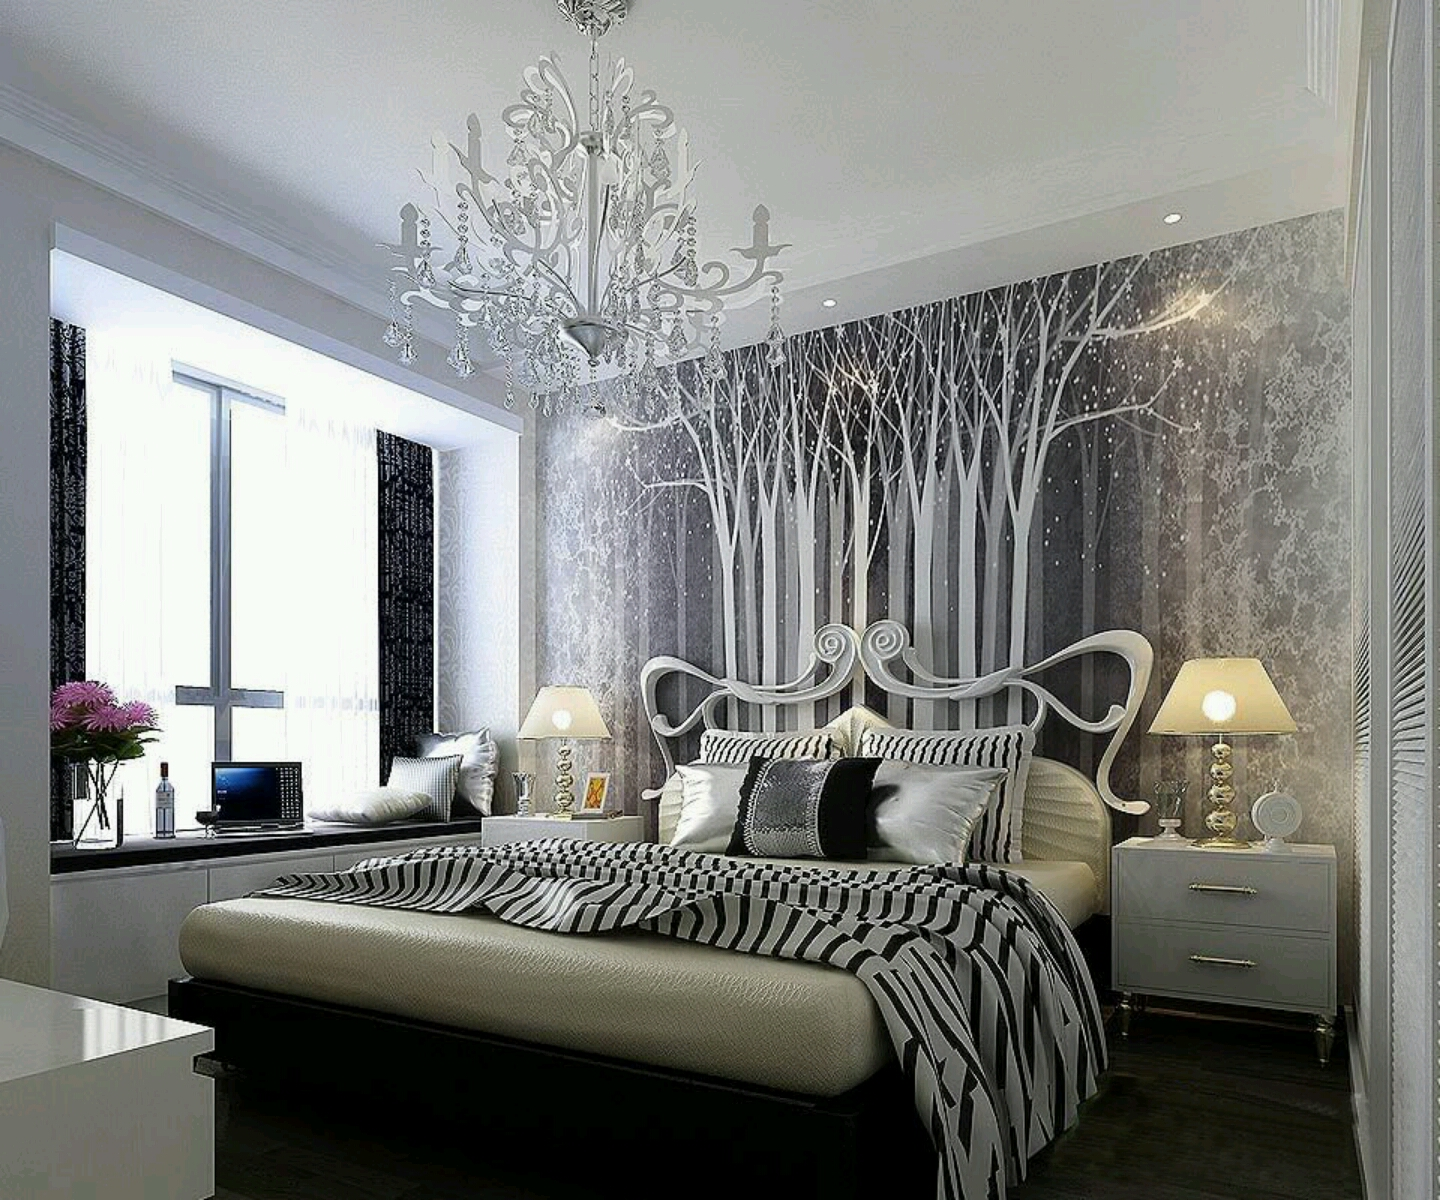 Pictures Of Beautiful Bedrooms Part - 29: Beautiful White Bedrooms Beautiful ...